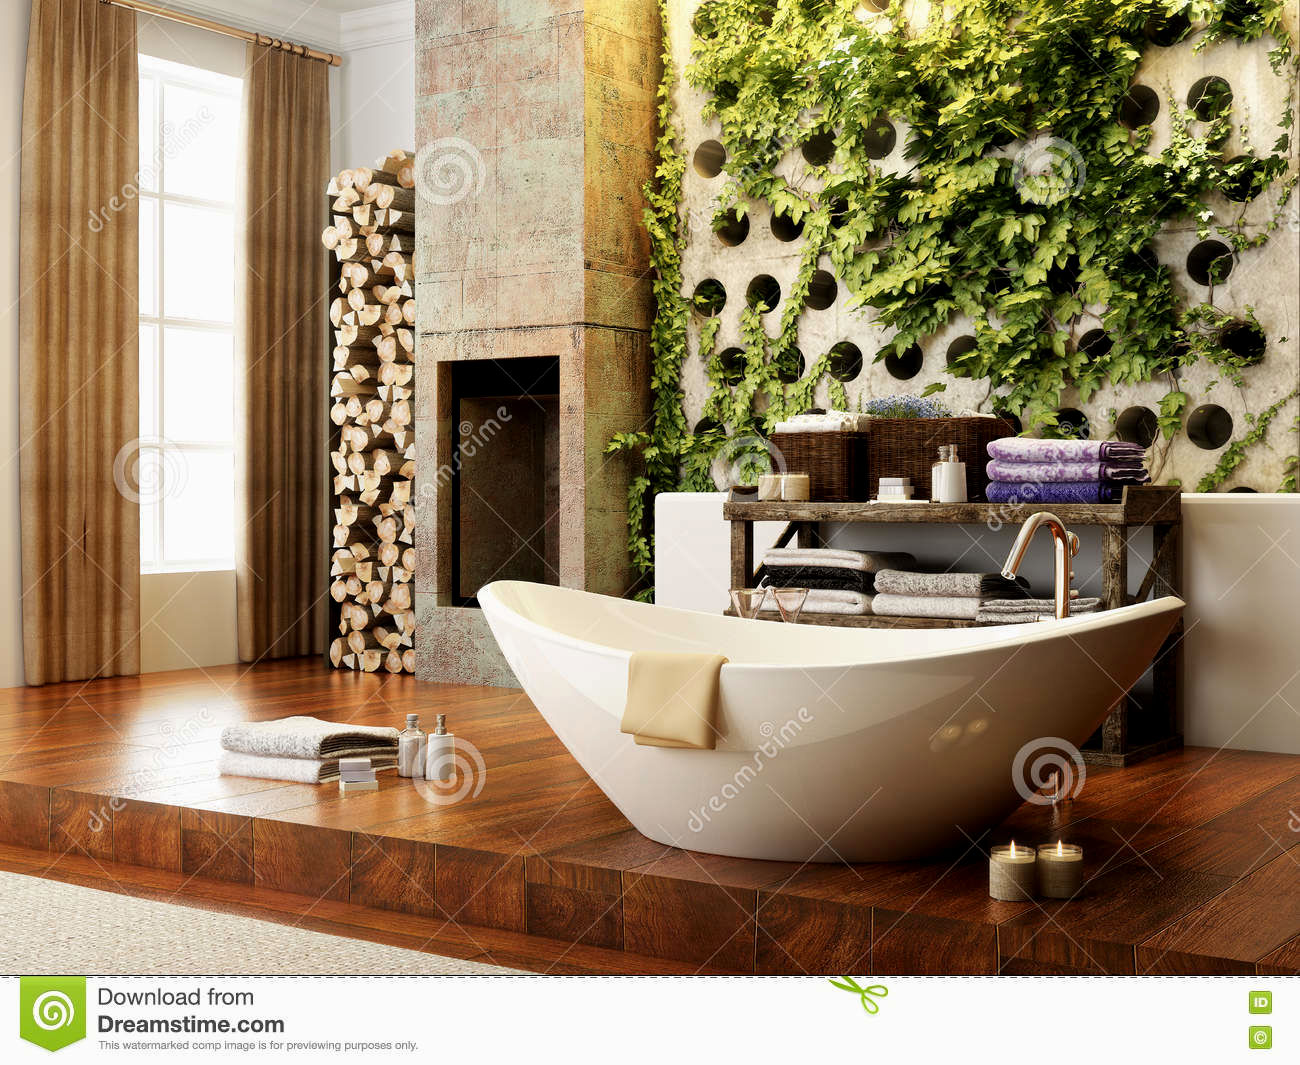 amazing large bathroom rugs concept-Best Of Large Bathroom Rugs Online